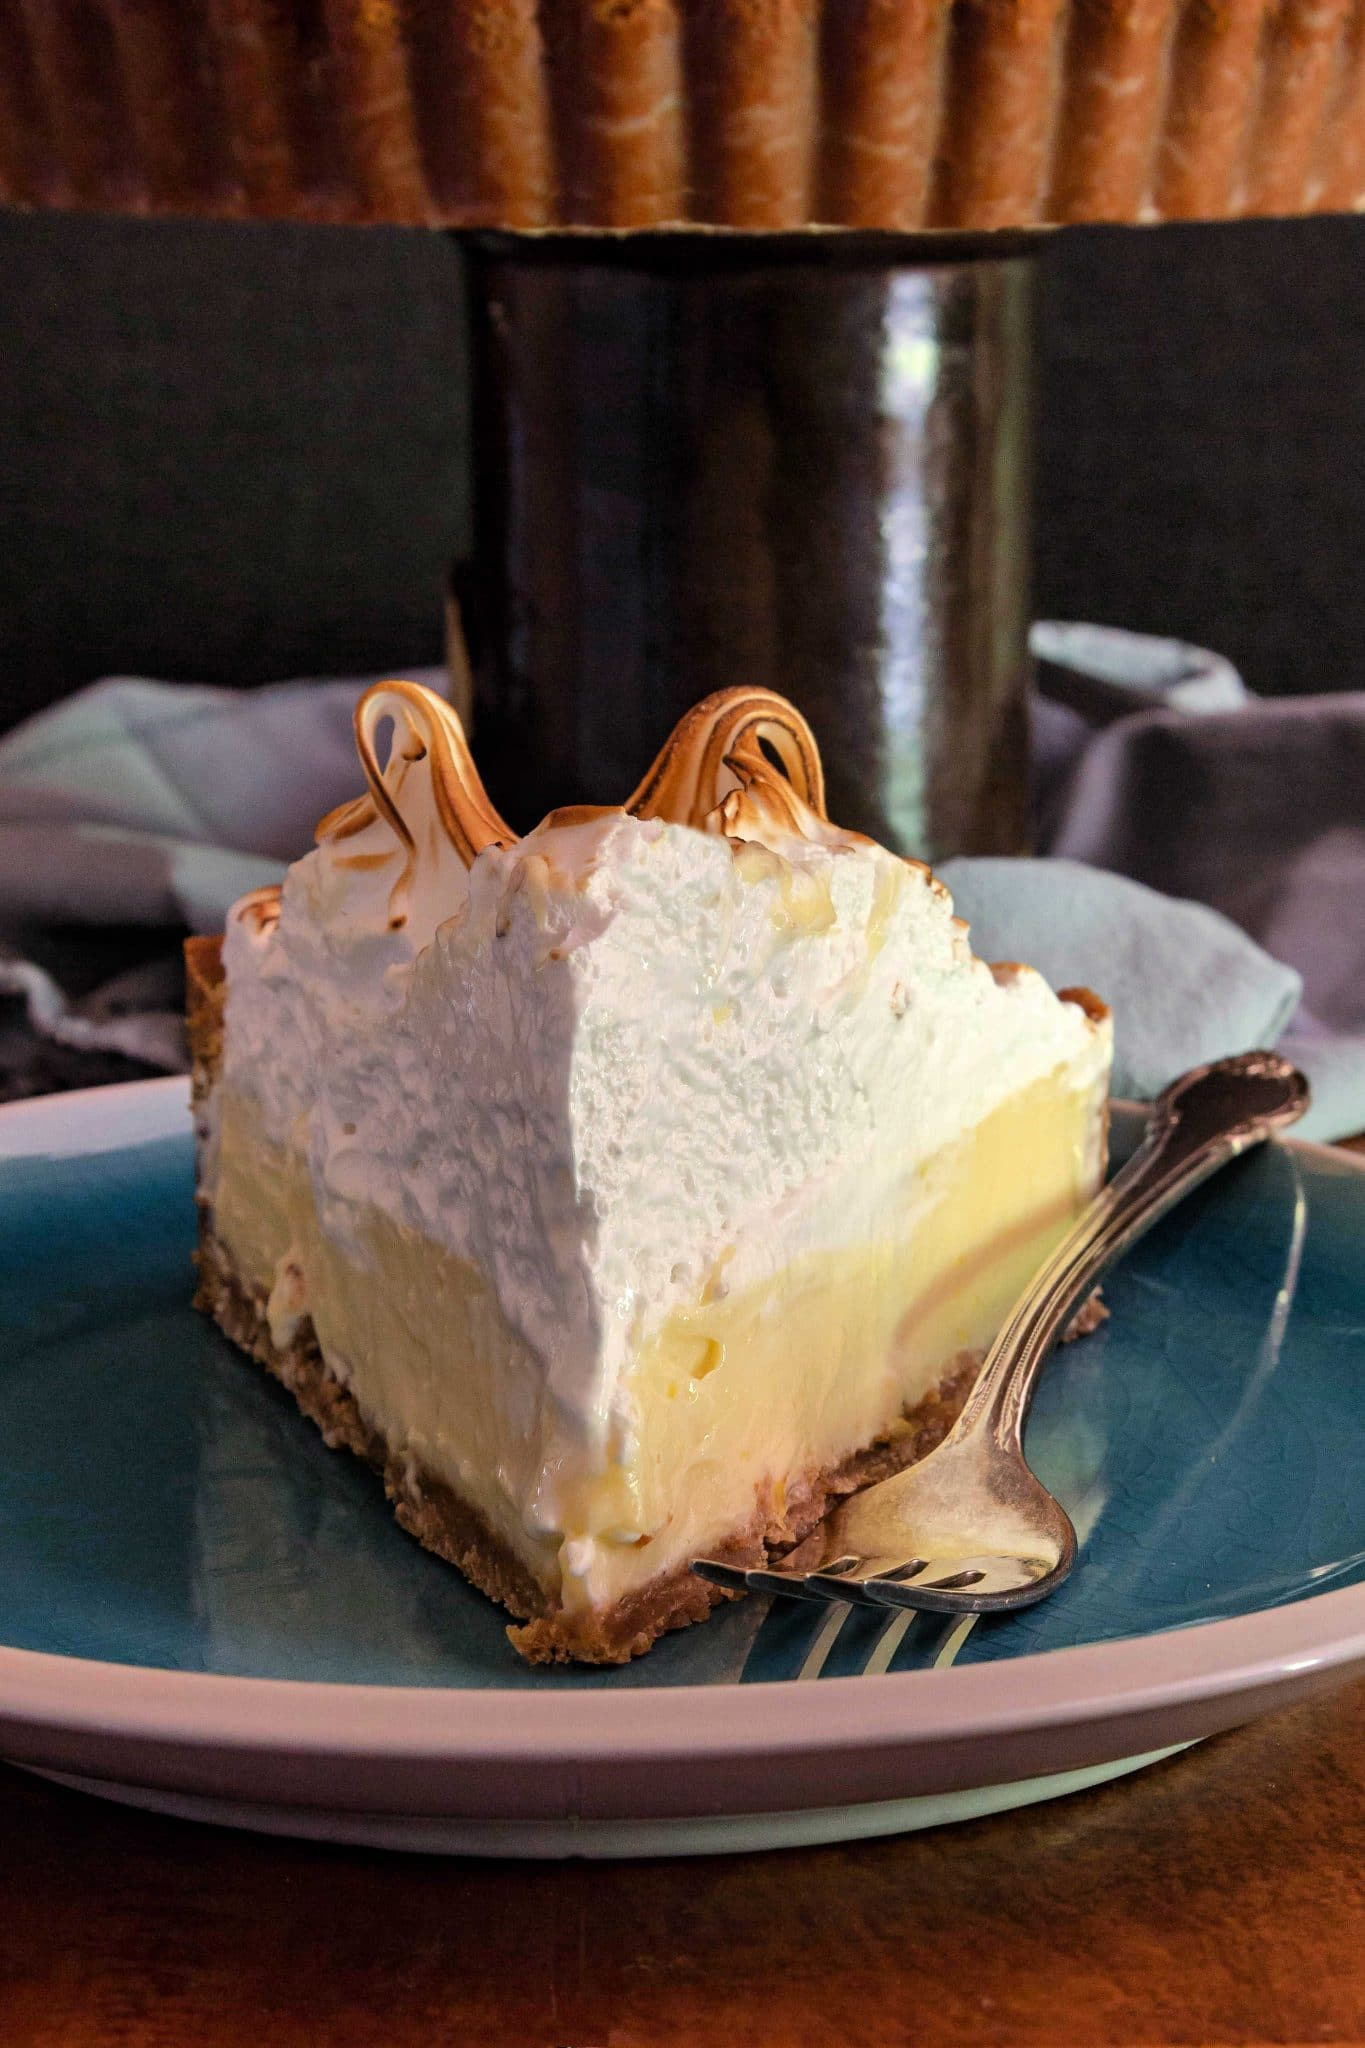 A close up of a slice of lemon meringue tart with a fork. Toasted meringue is clear.